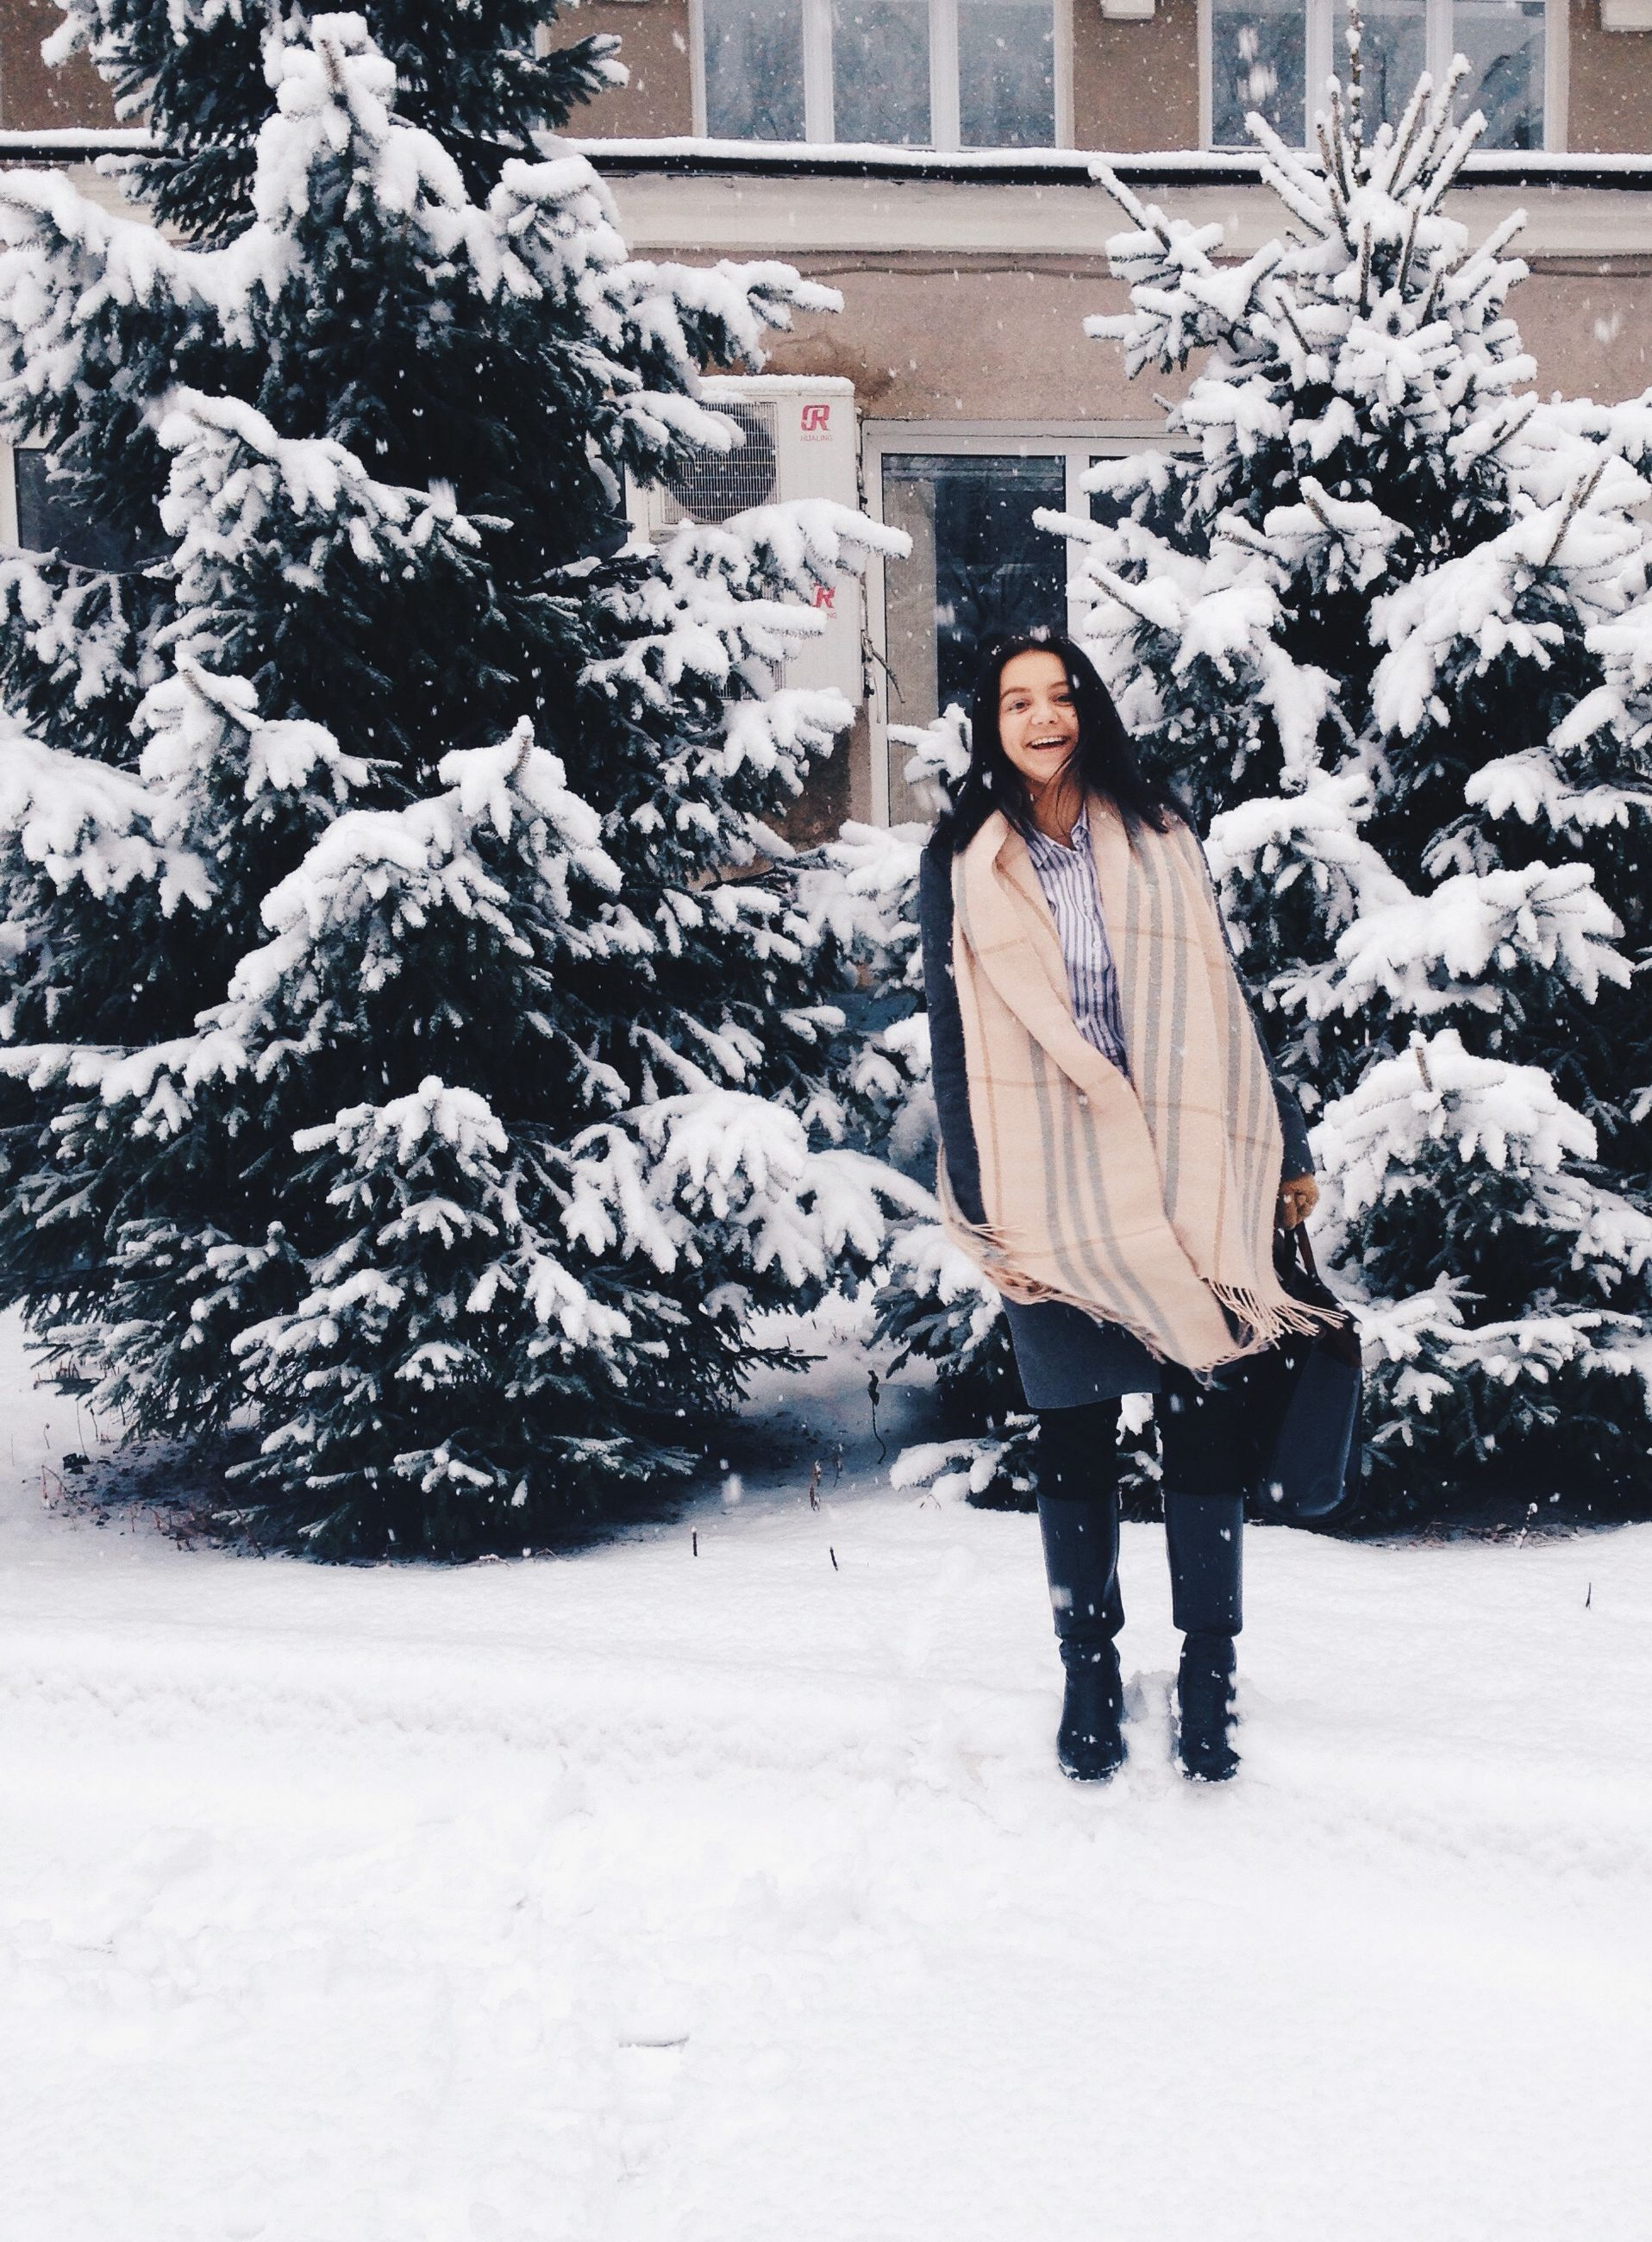 winter, snow, cold temperature, season, lifestyles, warm clothing, building exterior, weather, leisure activity, full length, covering, architecture, front view, white color, built structure, person, casual clothing, standing